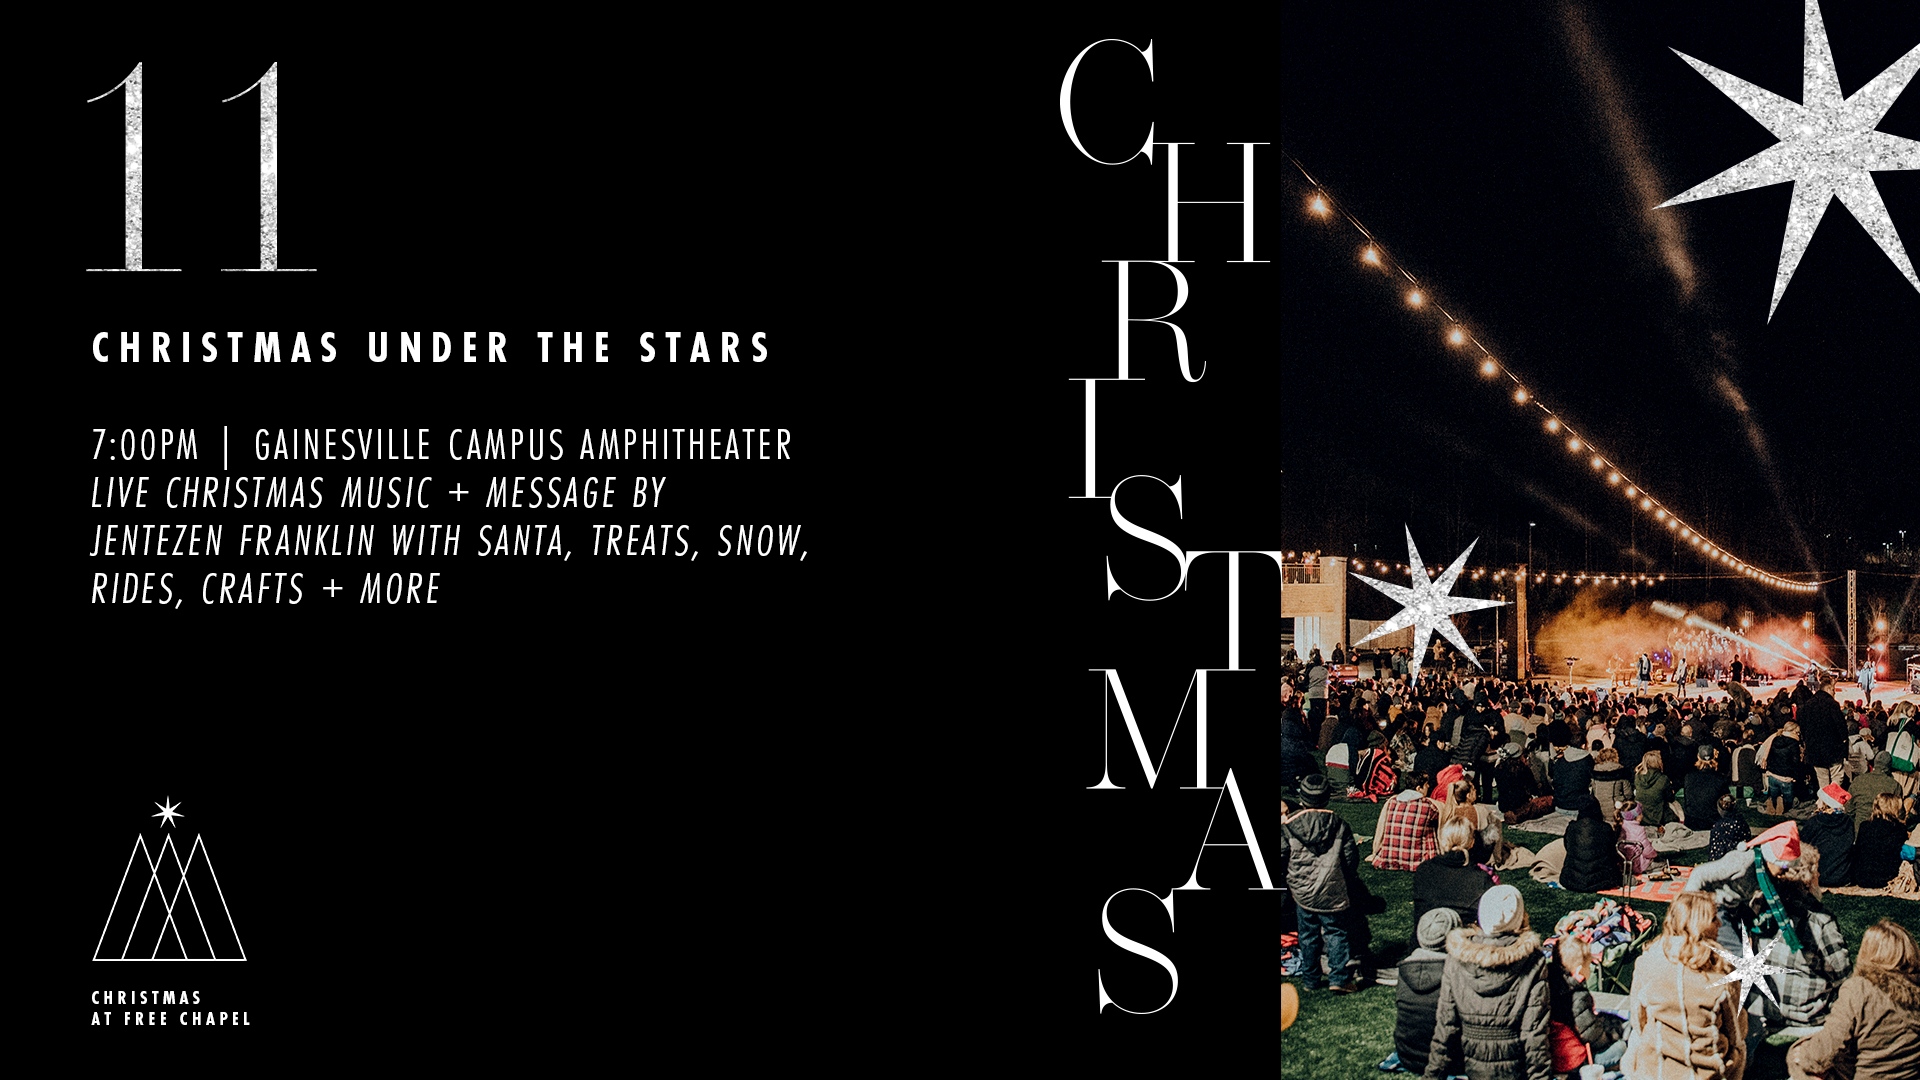 Christmas Under The Stars at the Cumming campus